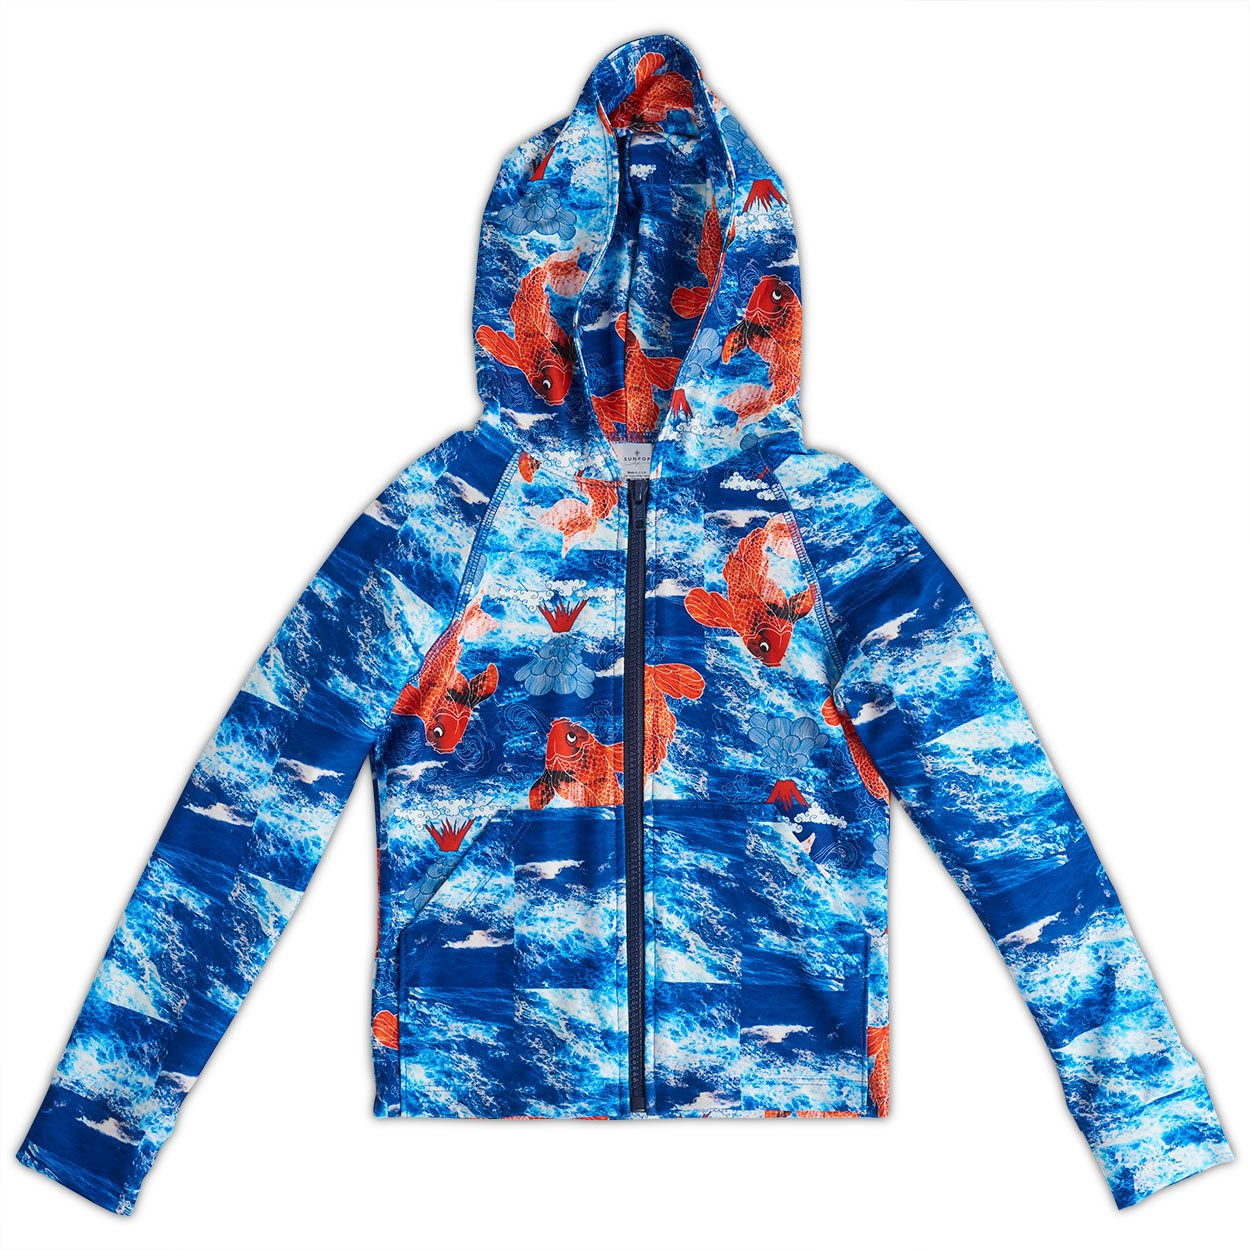 Koi Fish Zip Up Hoodie Upf50 Boys 2 12 Blue Orange Sunpoplife